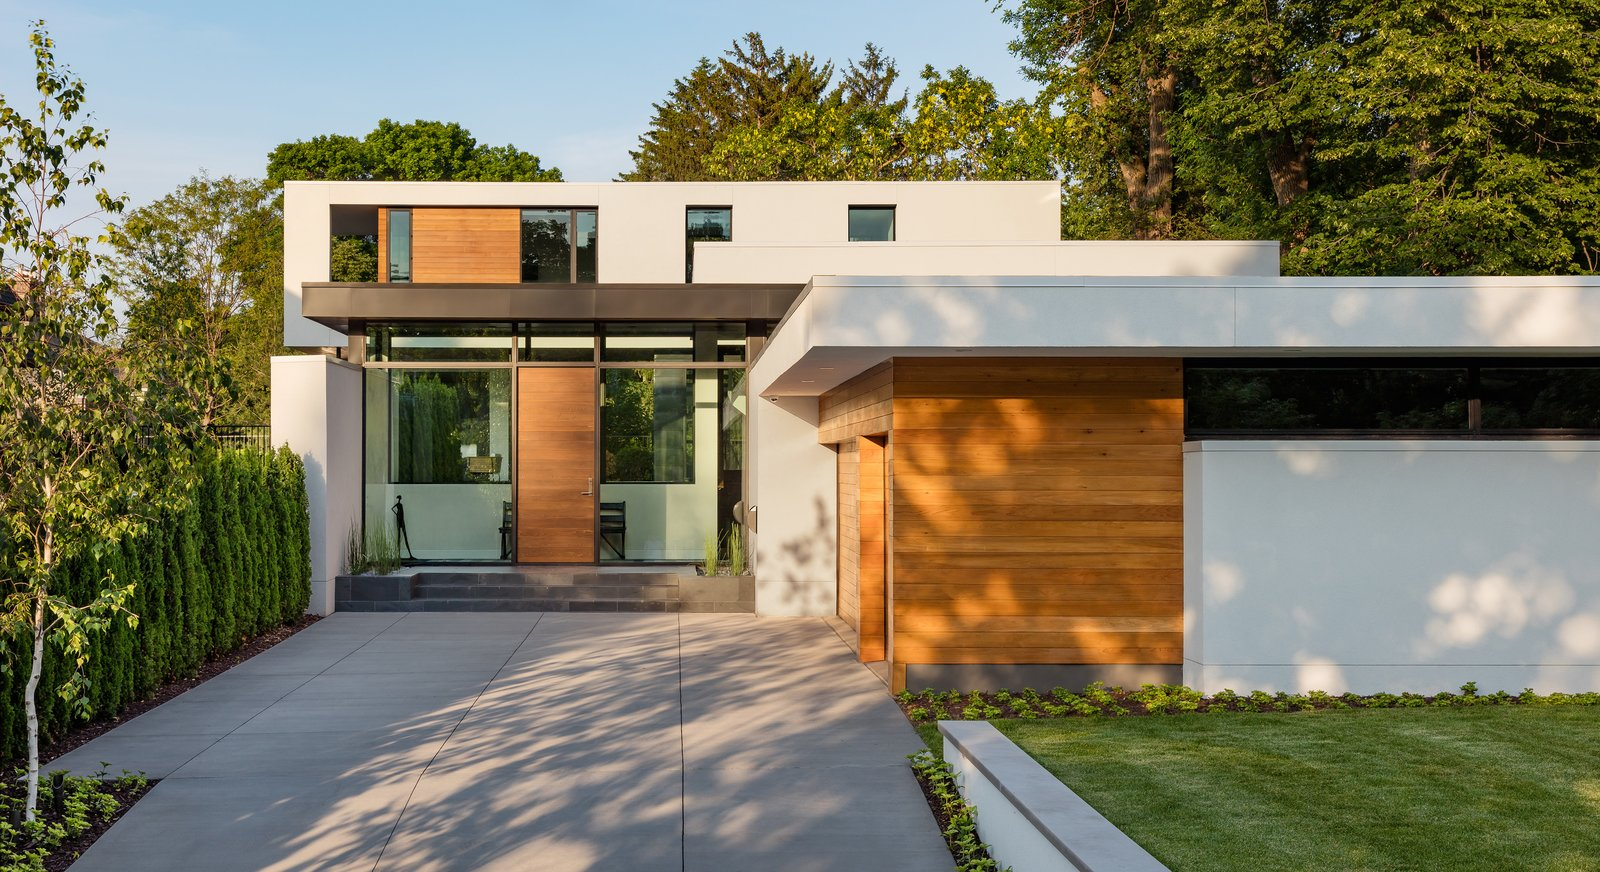 Attached Garage Room Type, Front Yard, Wood, Swing Door Type, Exterior, Metal, Outdoor, Trees, Garden, and Raised Planters  Calhoun Pavilions Residence by Peterssen/Keller Architecture